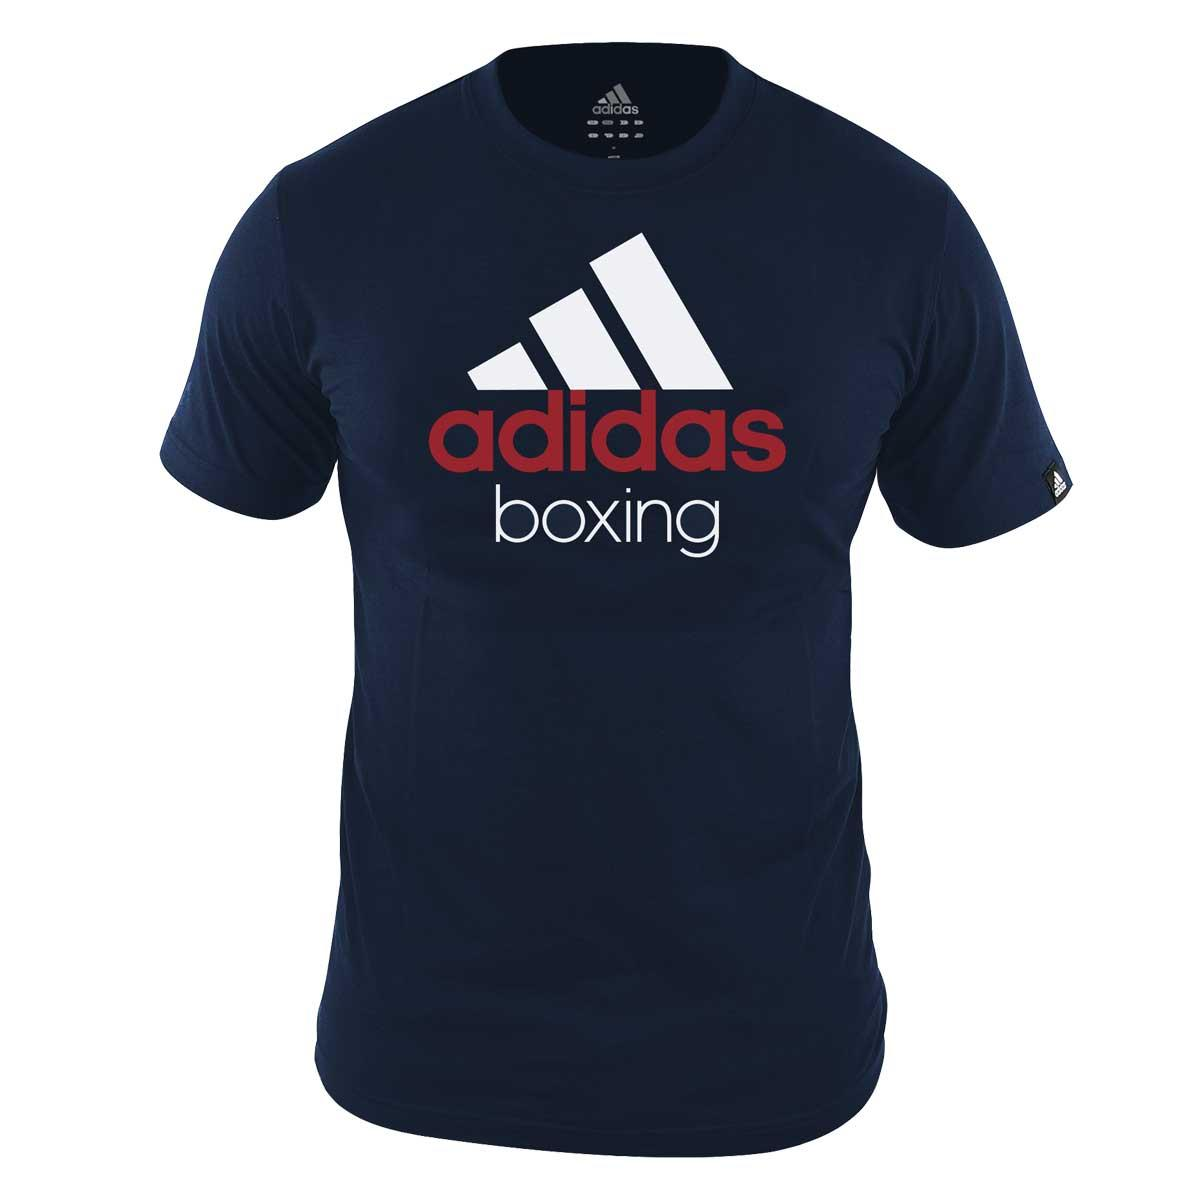 ADIDAS T-SHIRT BOXING